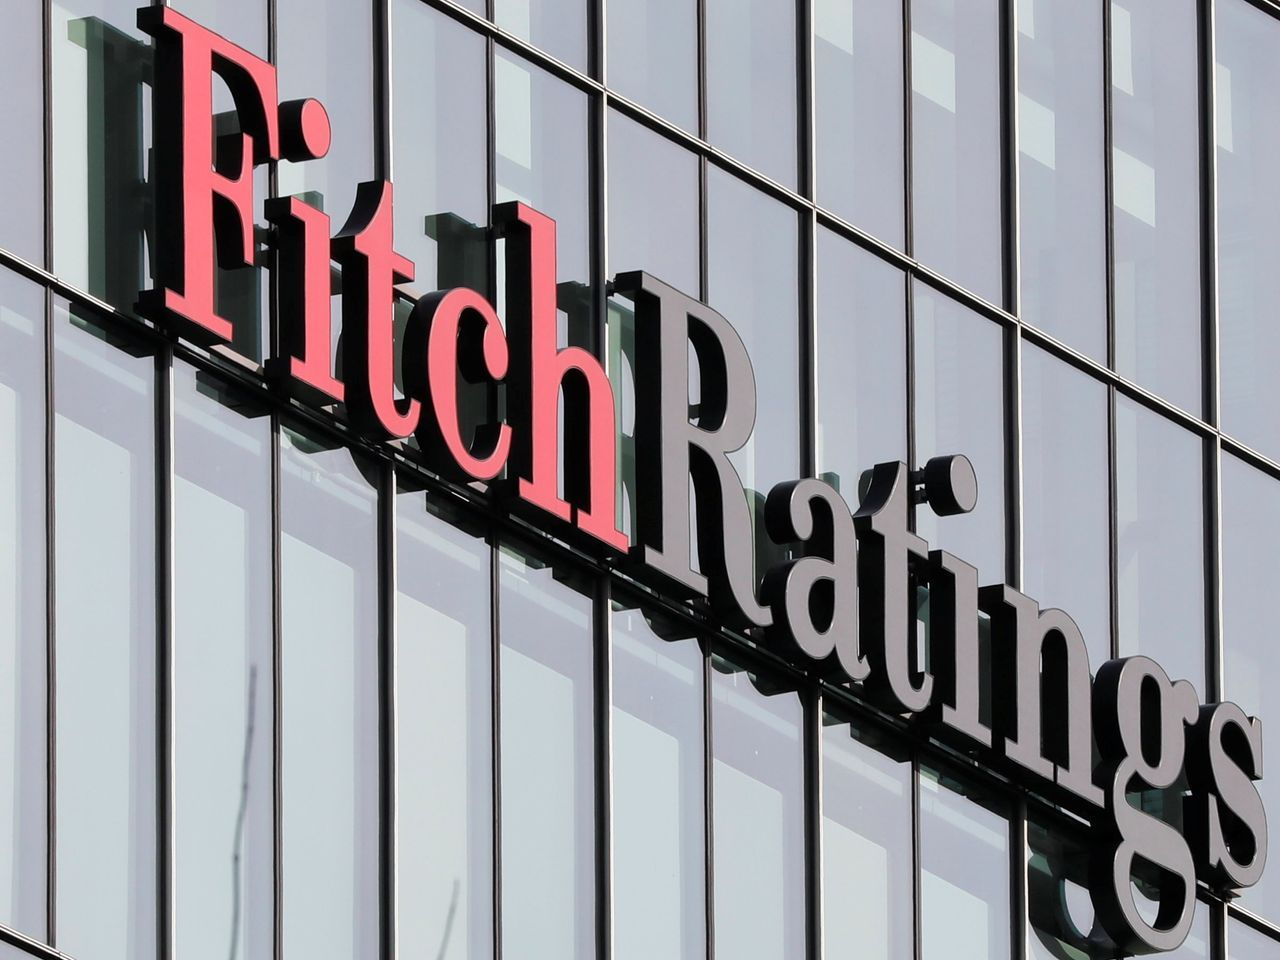 Vietnam 2020 government debt to stay in line with current sovereign rating: Fitch